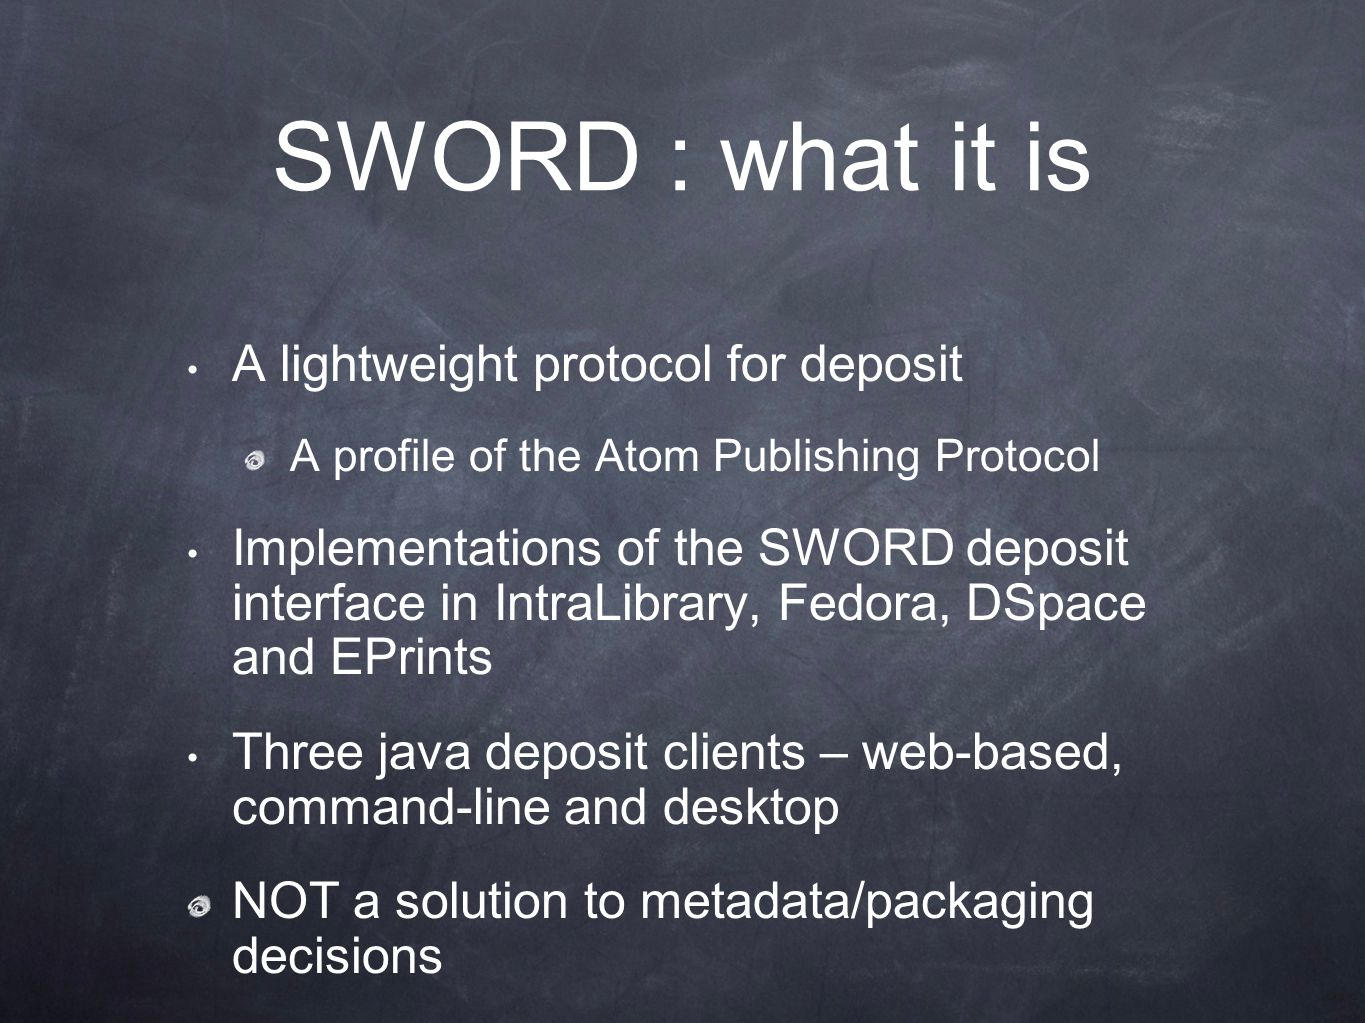 SWORD : what it is A lightweight protocol for deposit A profile of the Atom Publishing Protocol Implementations of the SWORD deposit interface in IntraLibrary, Fedora, DSpace and EPrints Three java deposit clients – web-based, command-line and desktop NOT a solution to metadata/packaging decisions